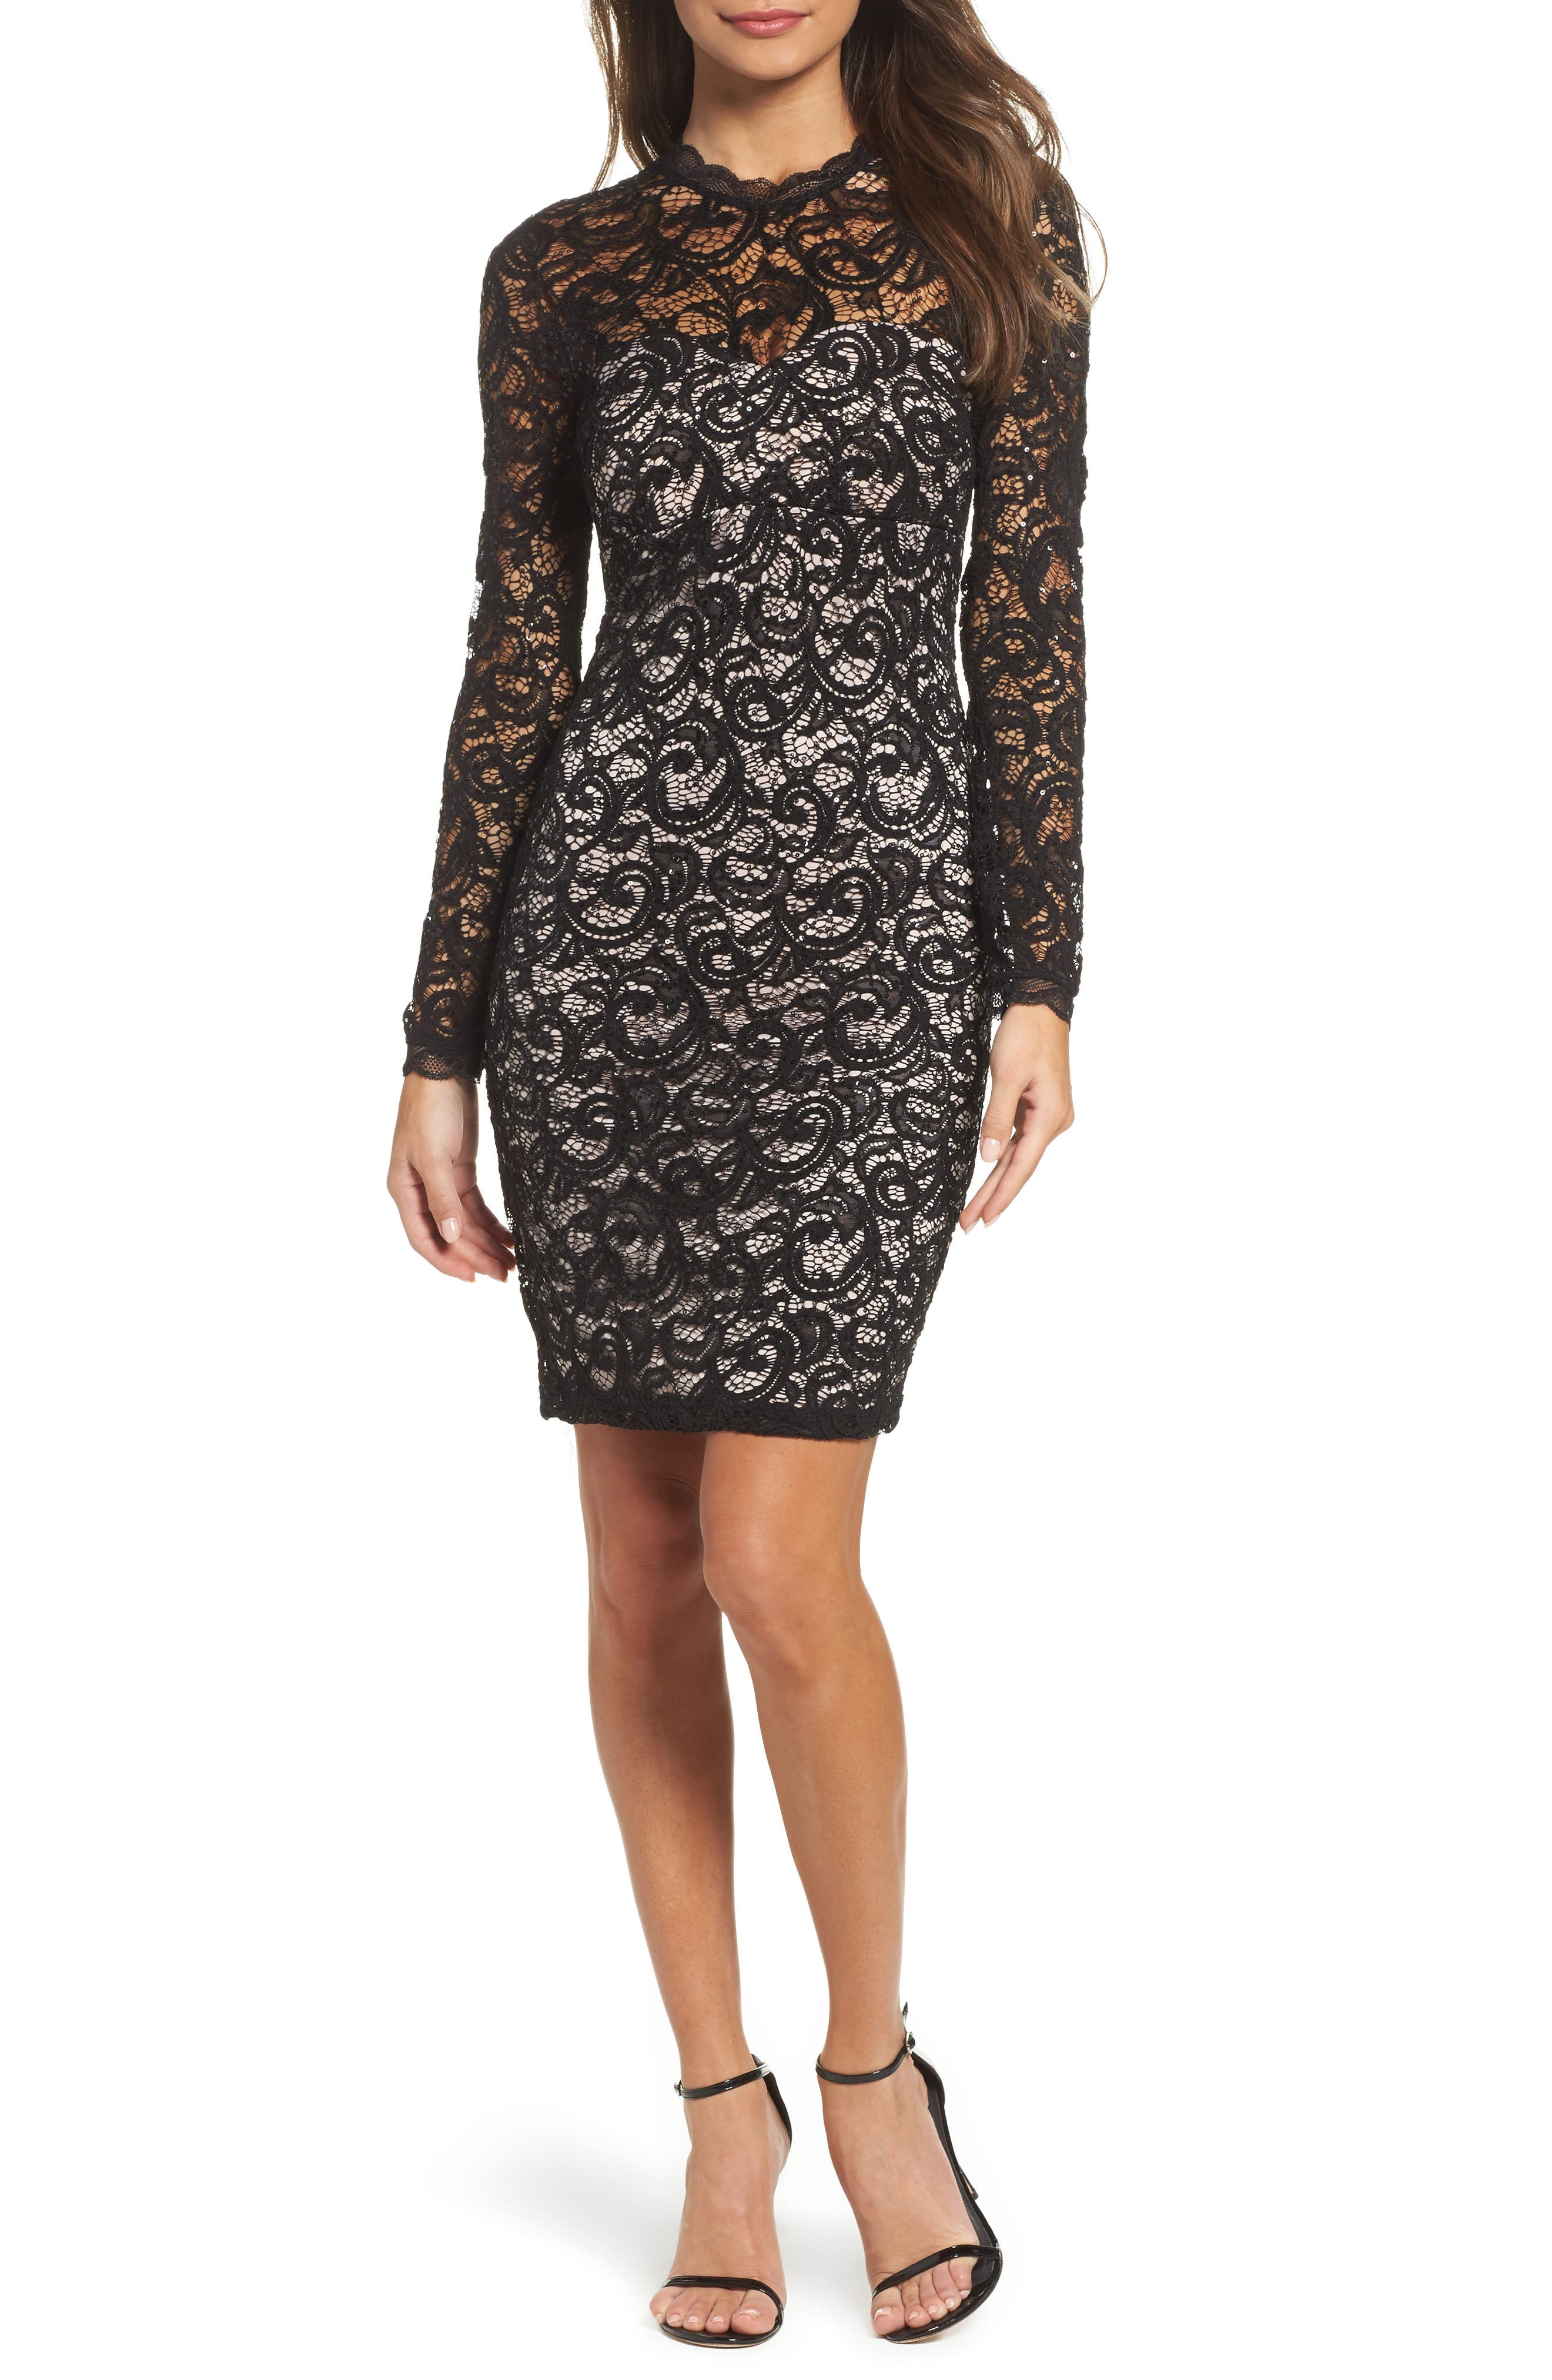 Sequin Hearts Embellished Lace Body-Con Dress